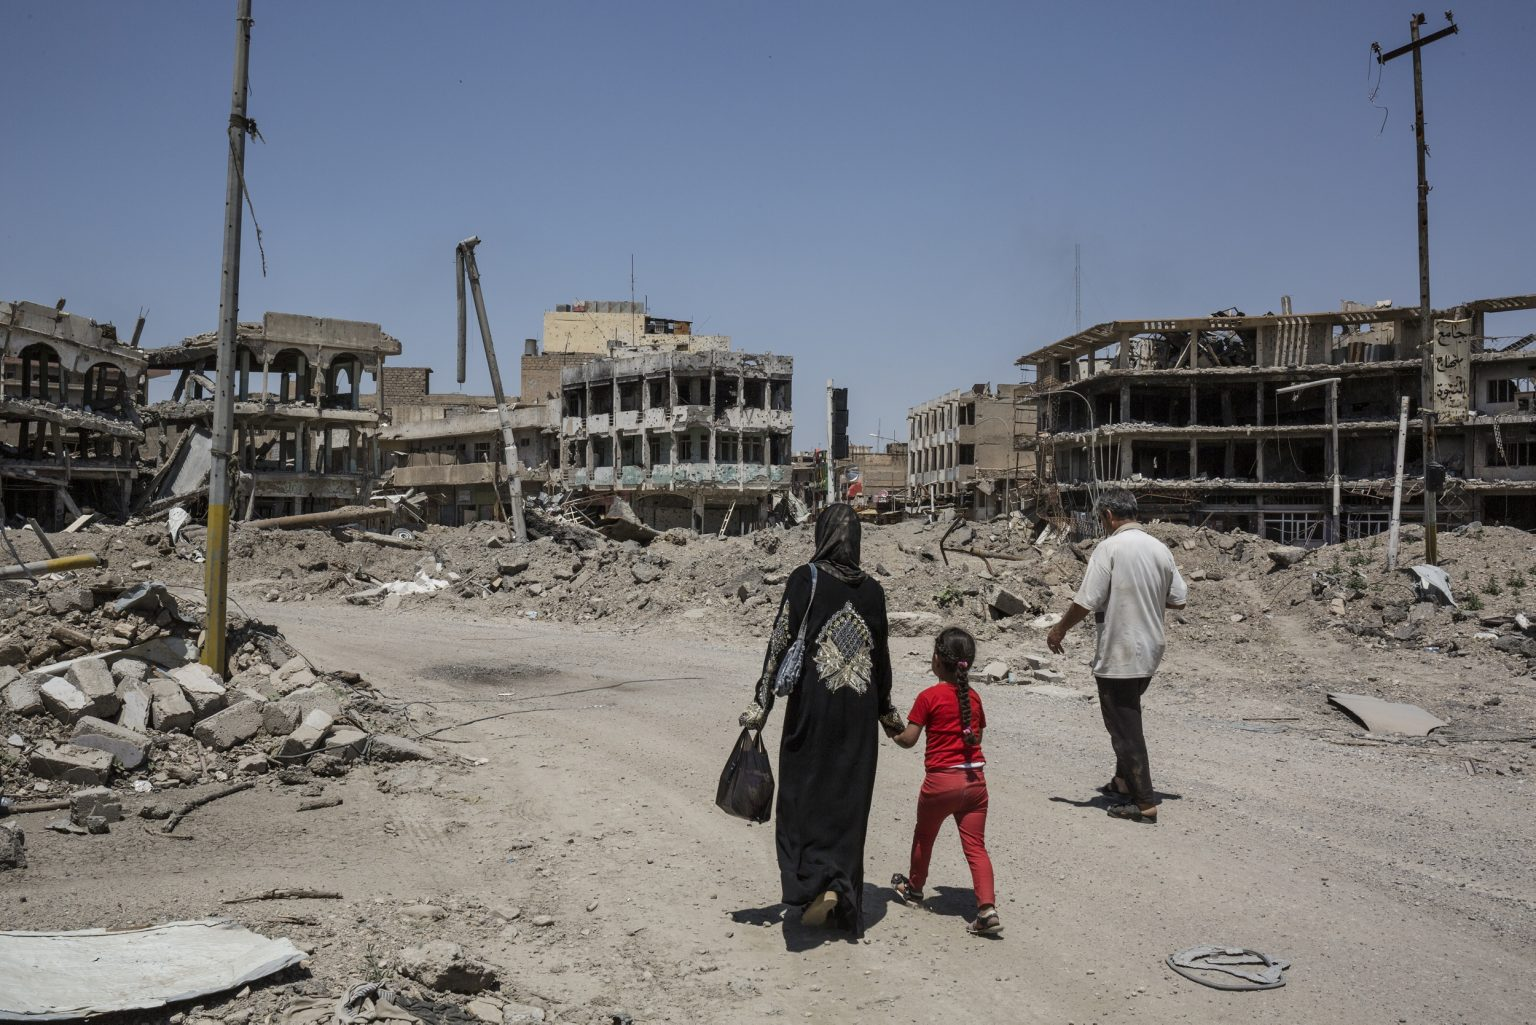 Mosul, Iraq - May 8th 2017 - View of the empty and destroyed  city of Mosul west after the battle between the Iraqi army and ISIS.  Ph.Giulio Piscitelli